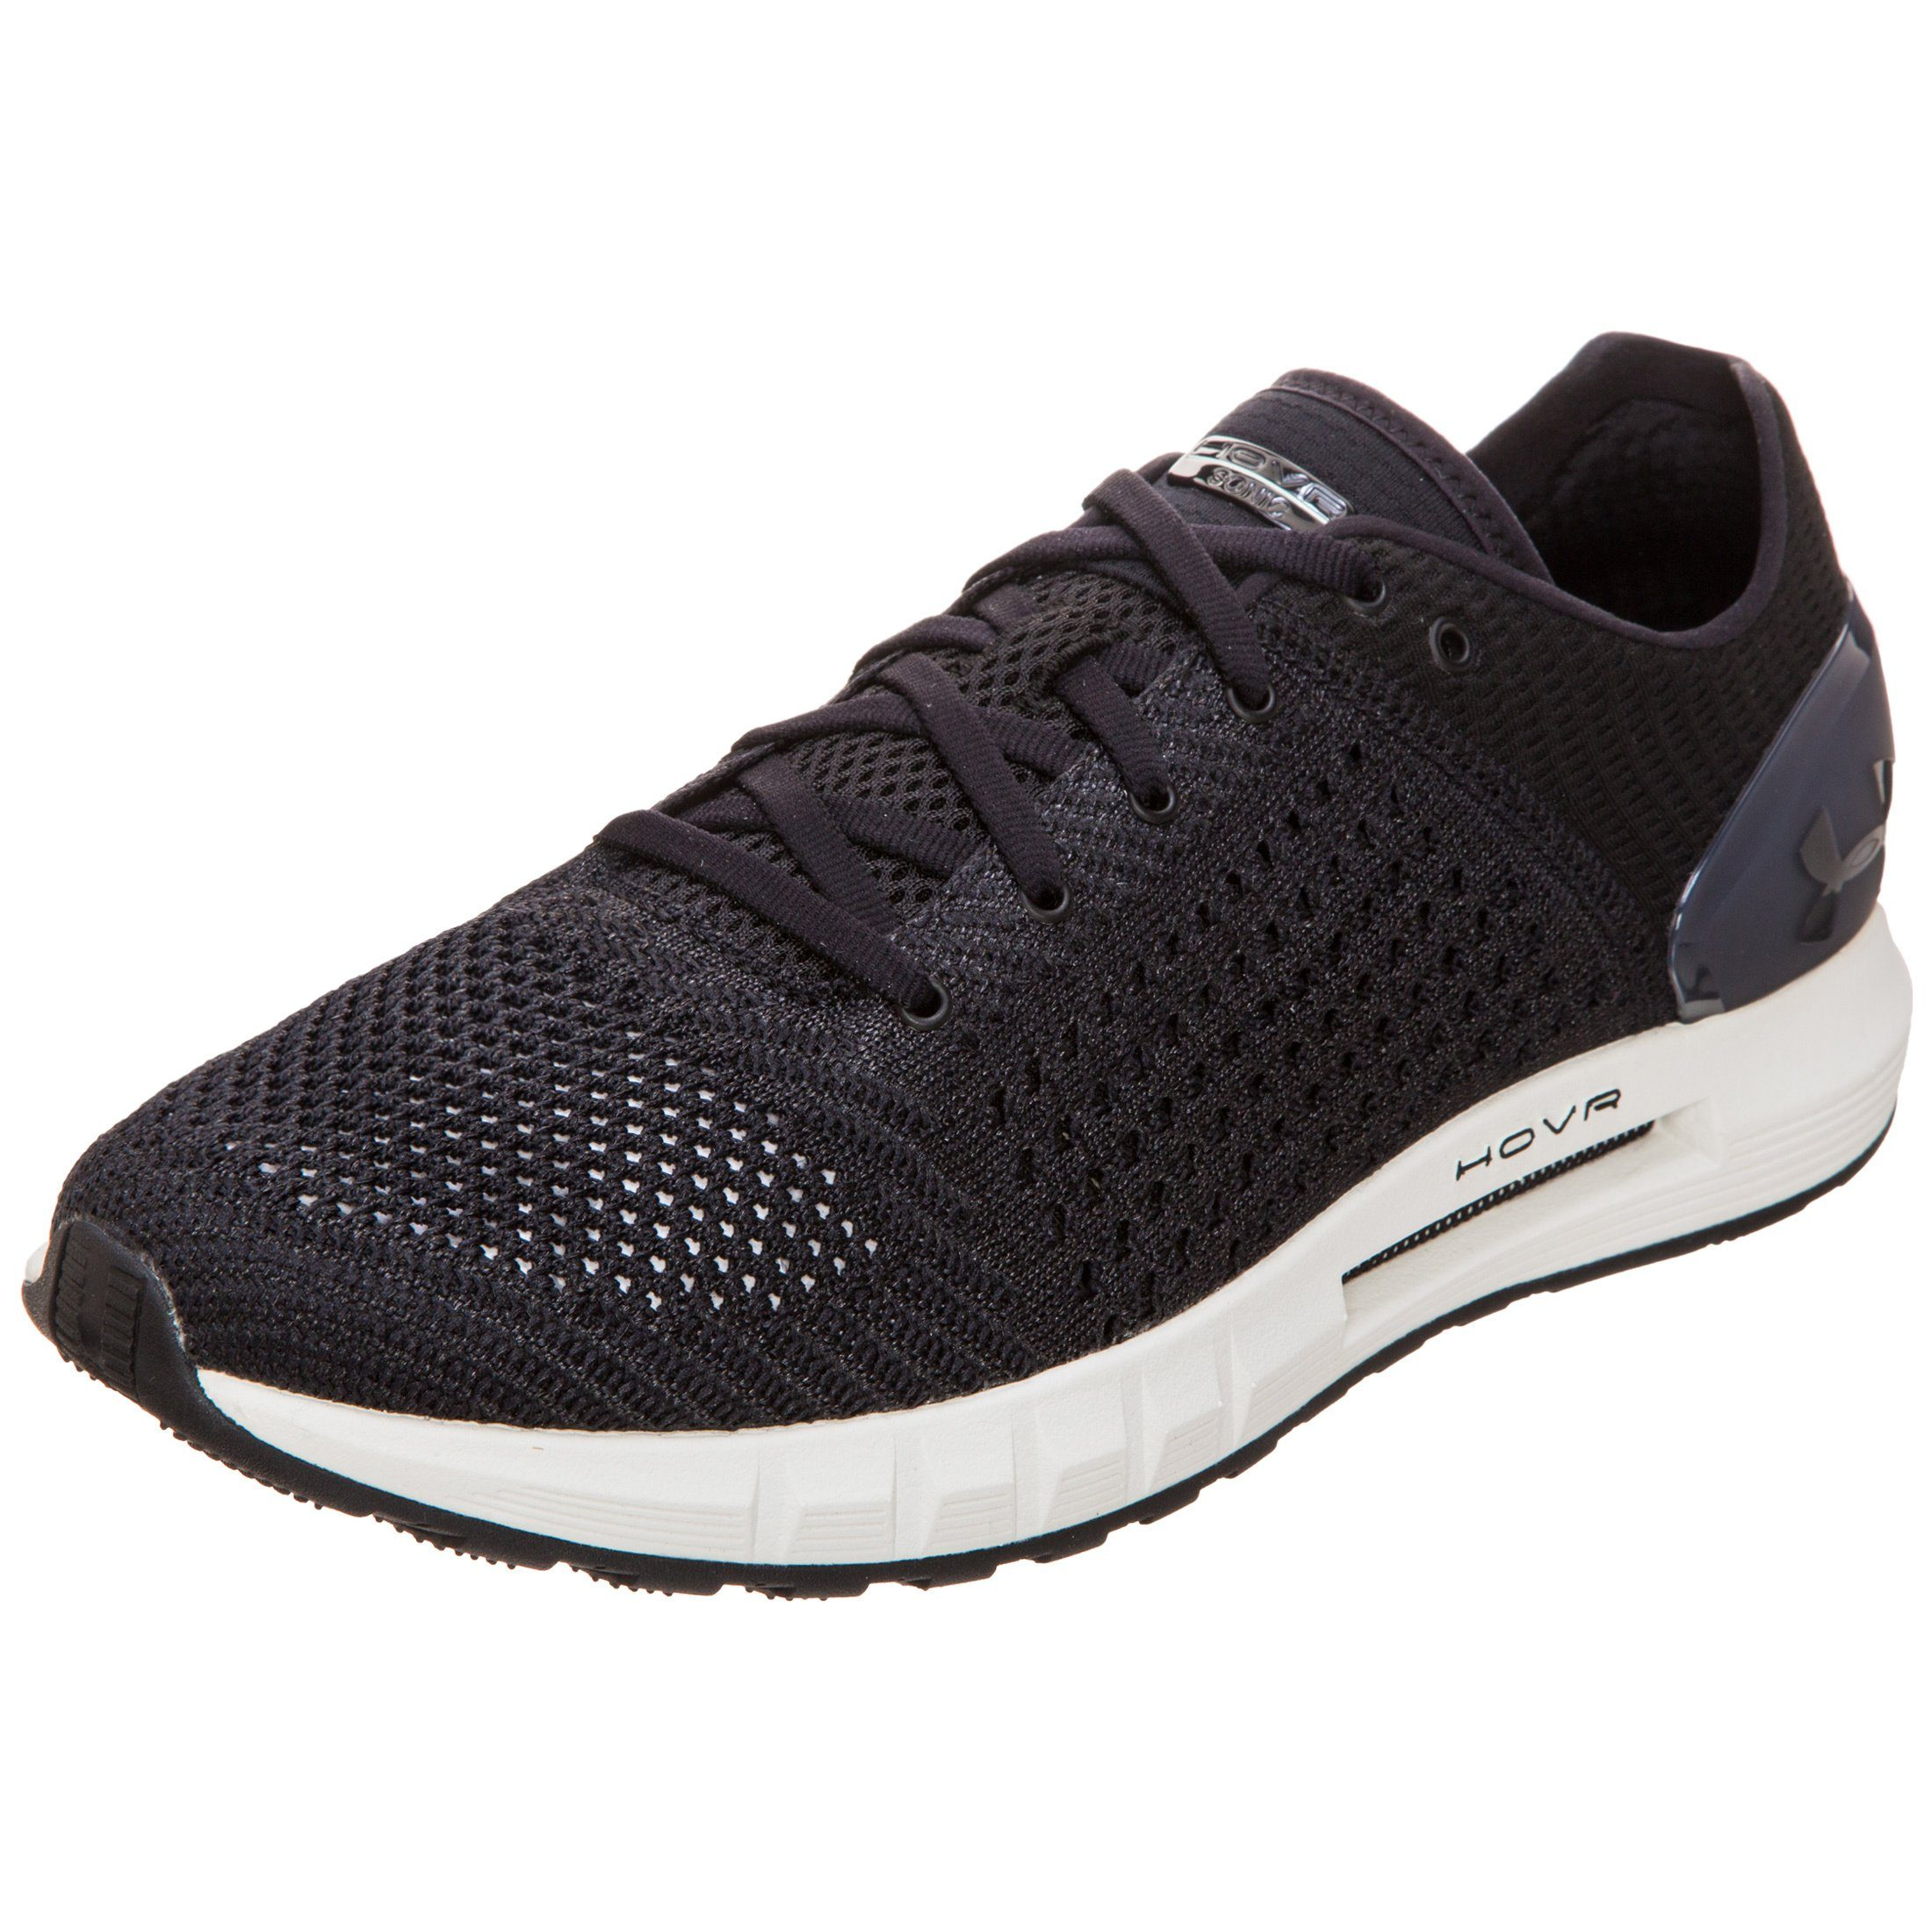 Under Armour Laufschuh Hovr Sonic